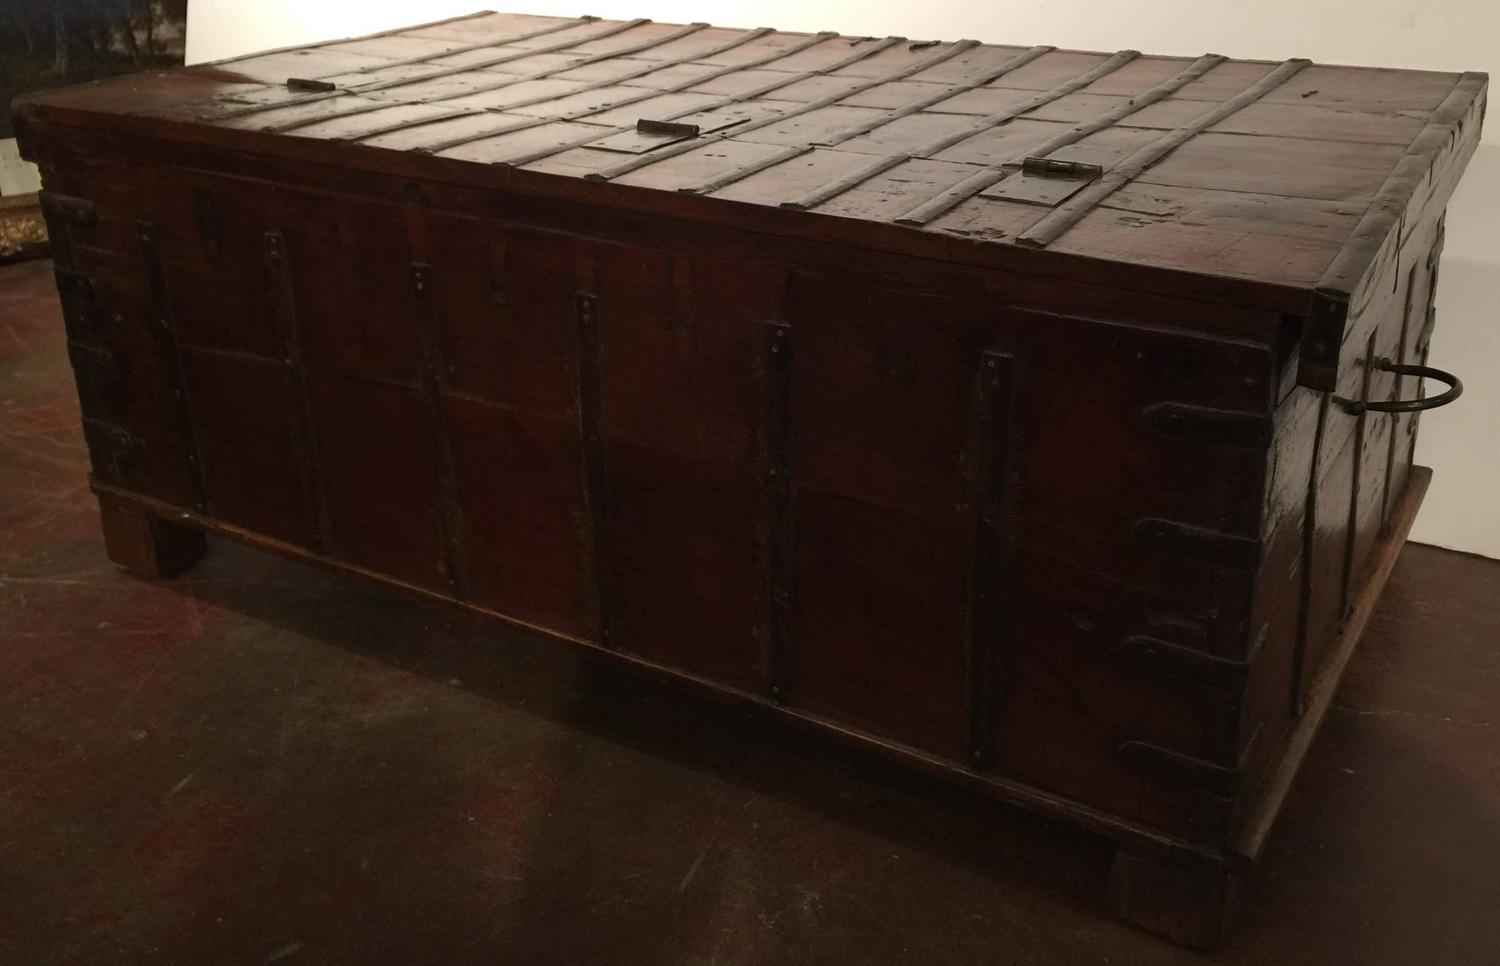 Antique Carved Chestnut Trunk Coffee Table For Sale at 1stdibs